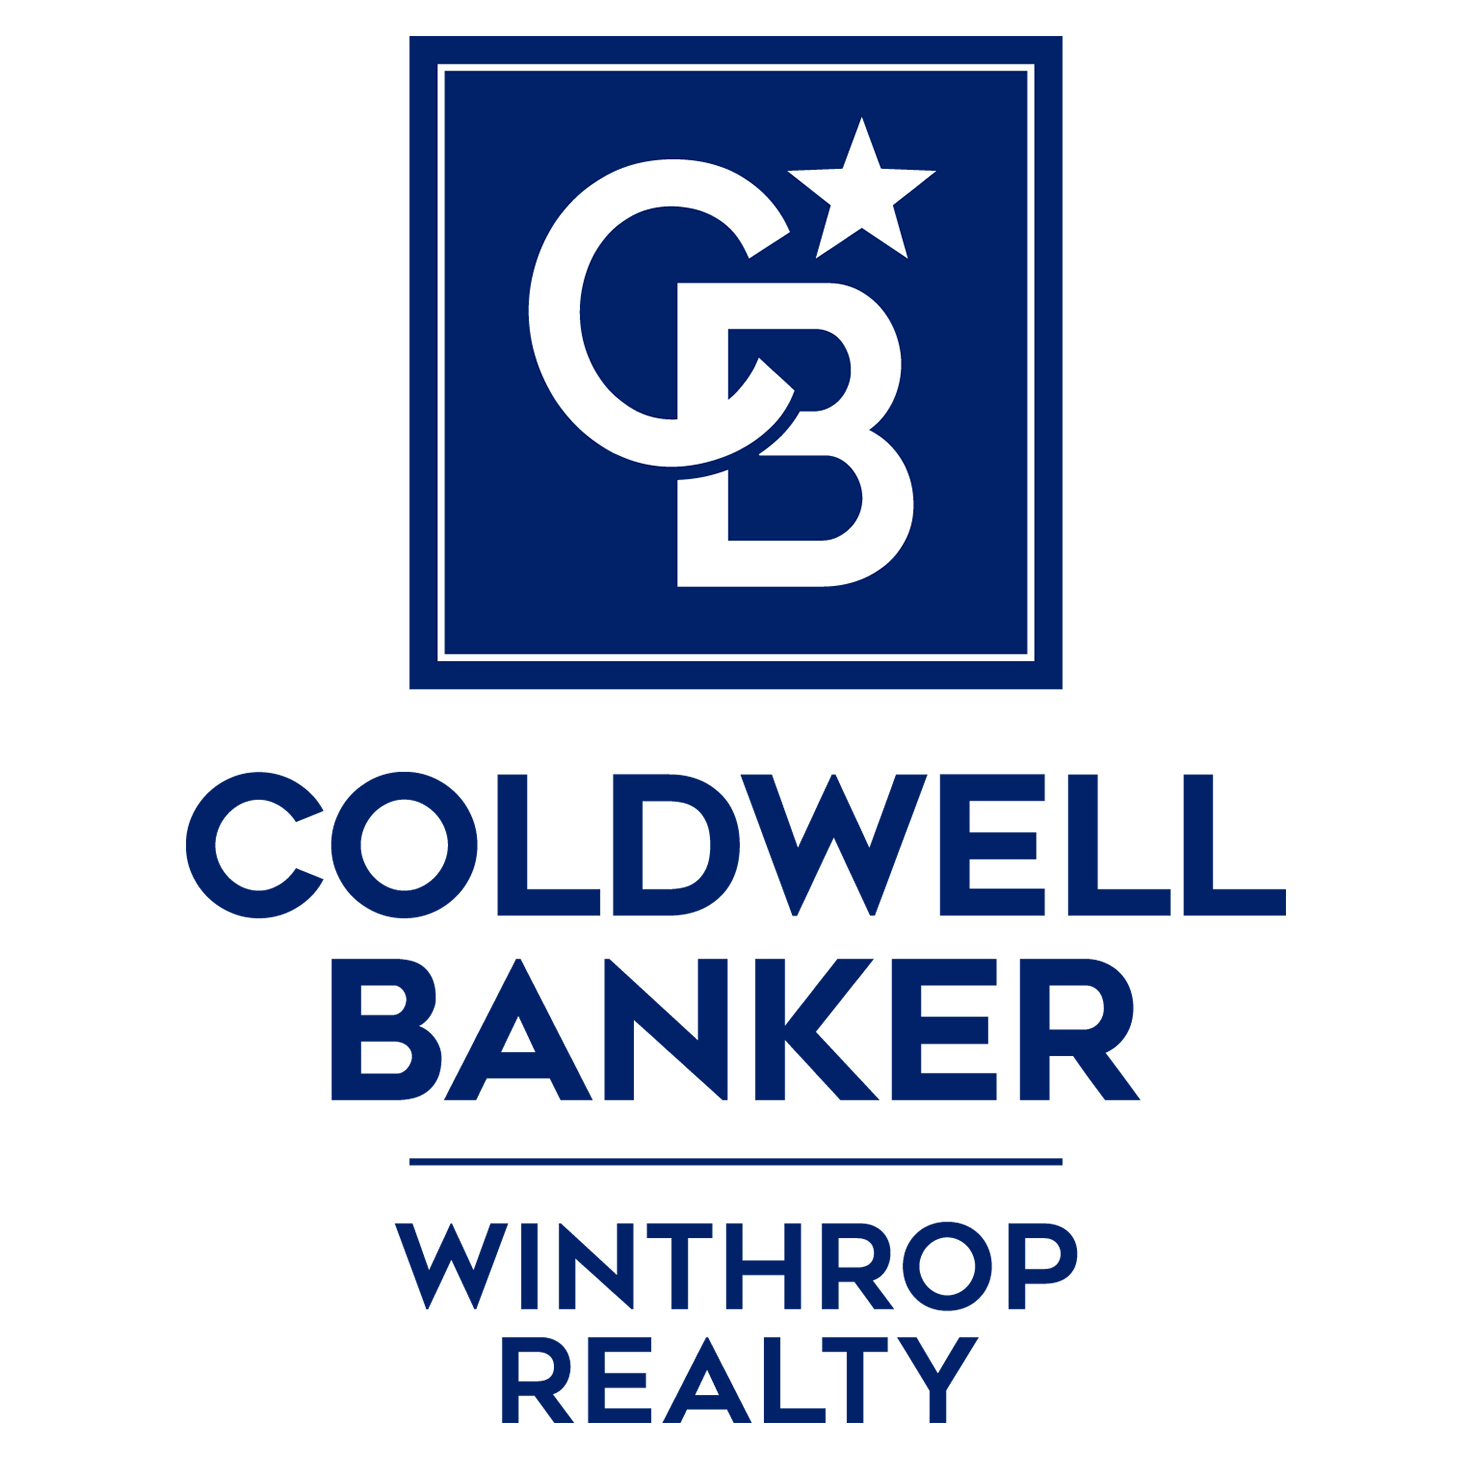 coldwell banker realty winthrop